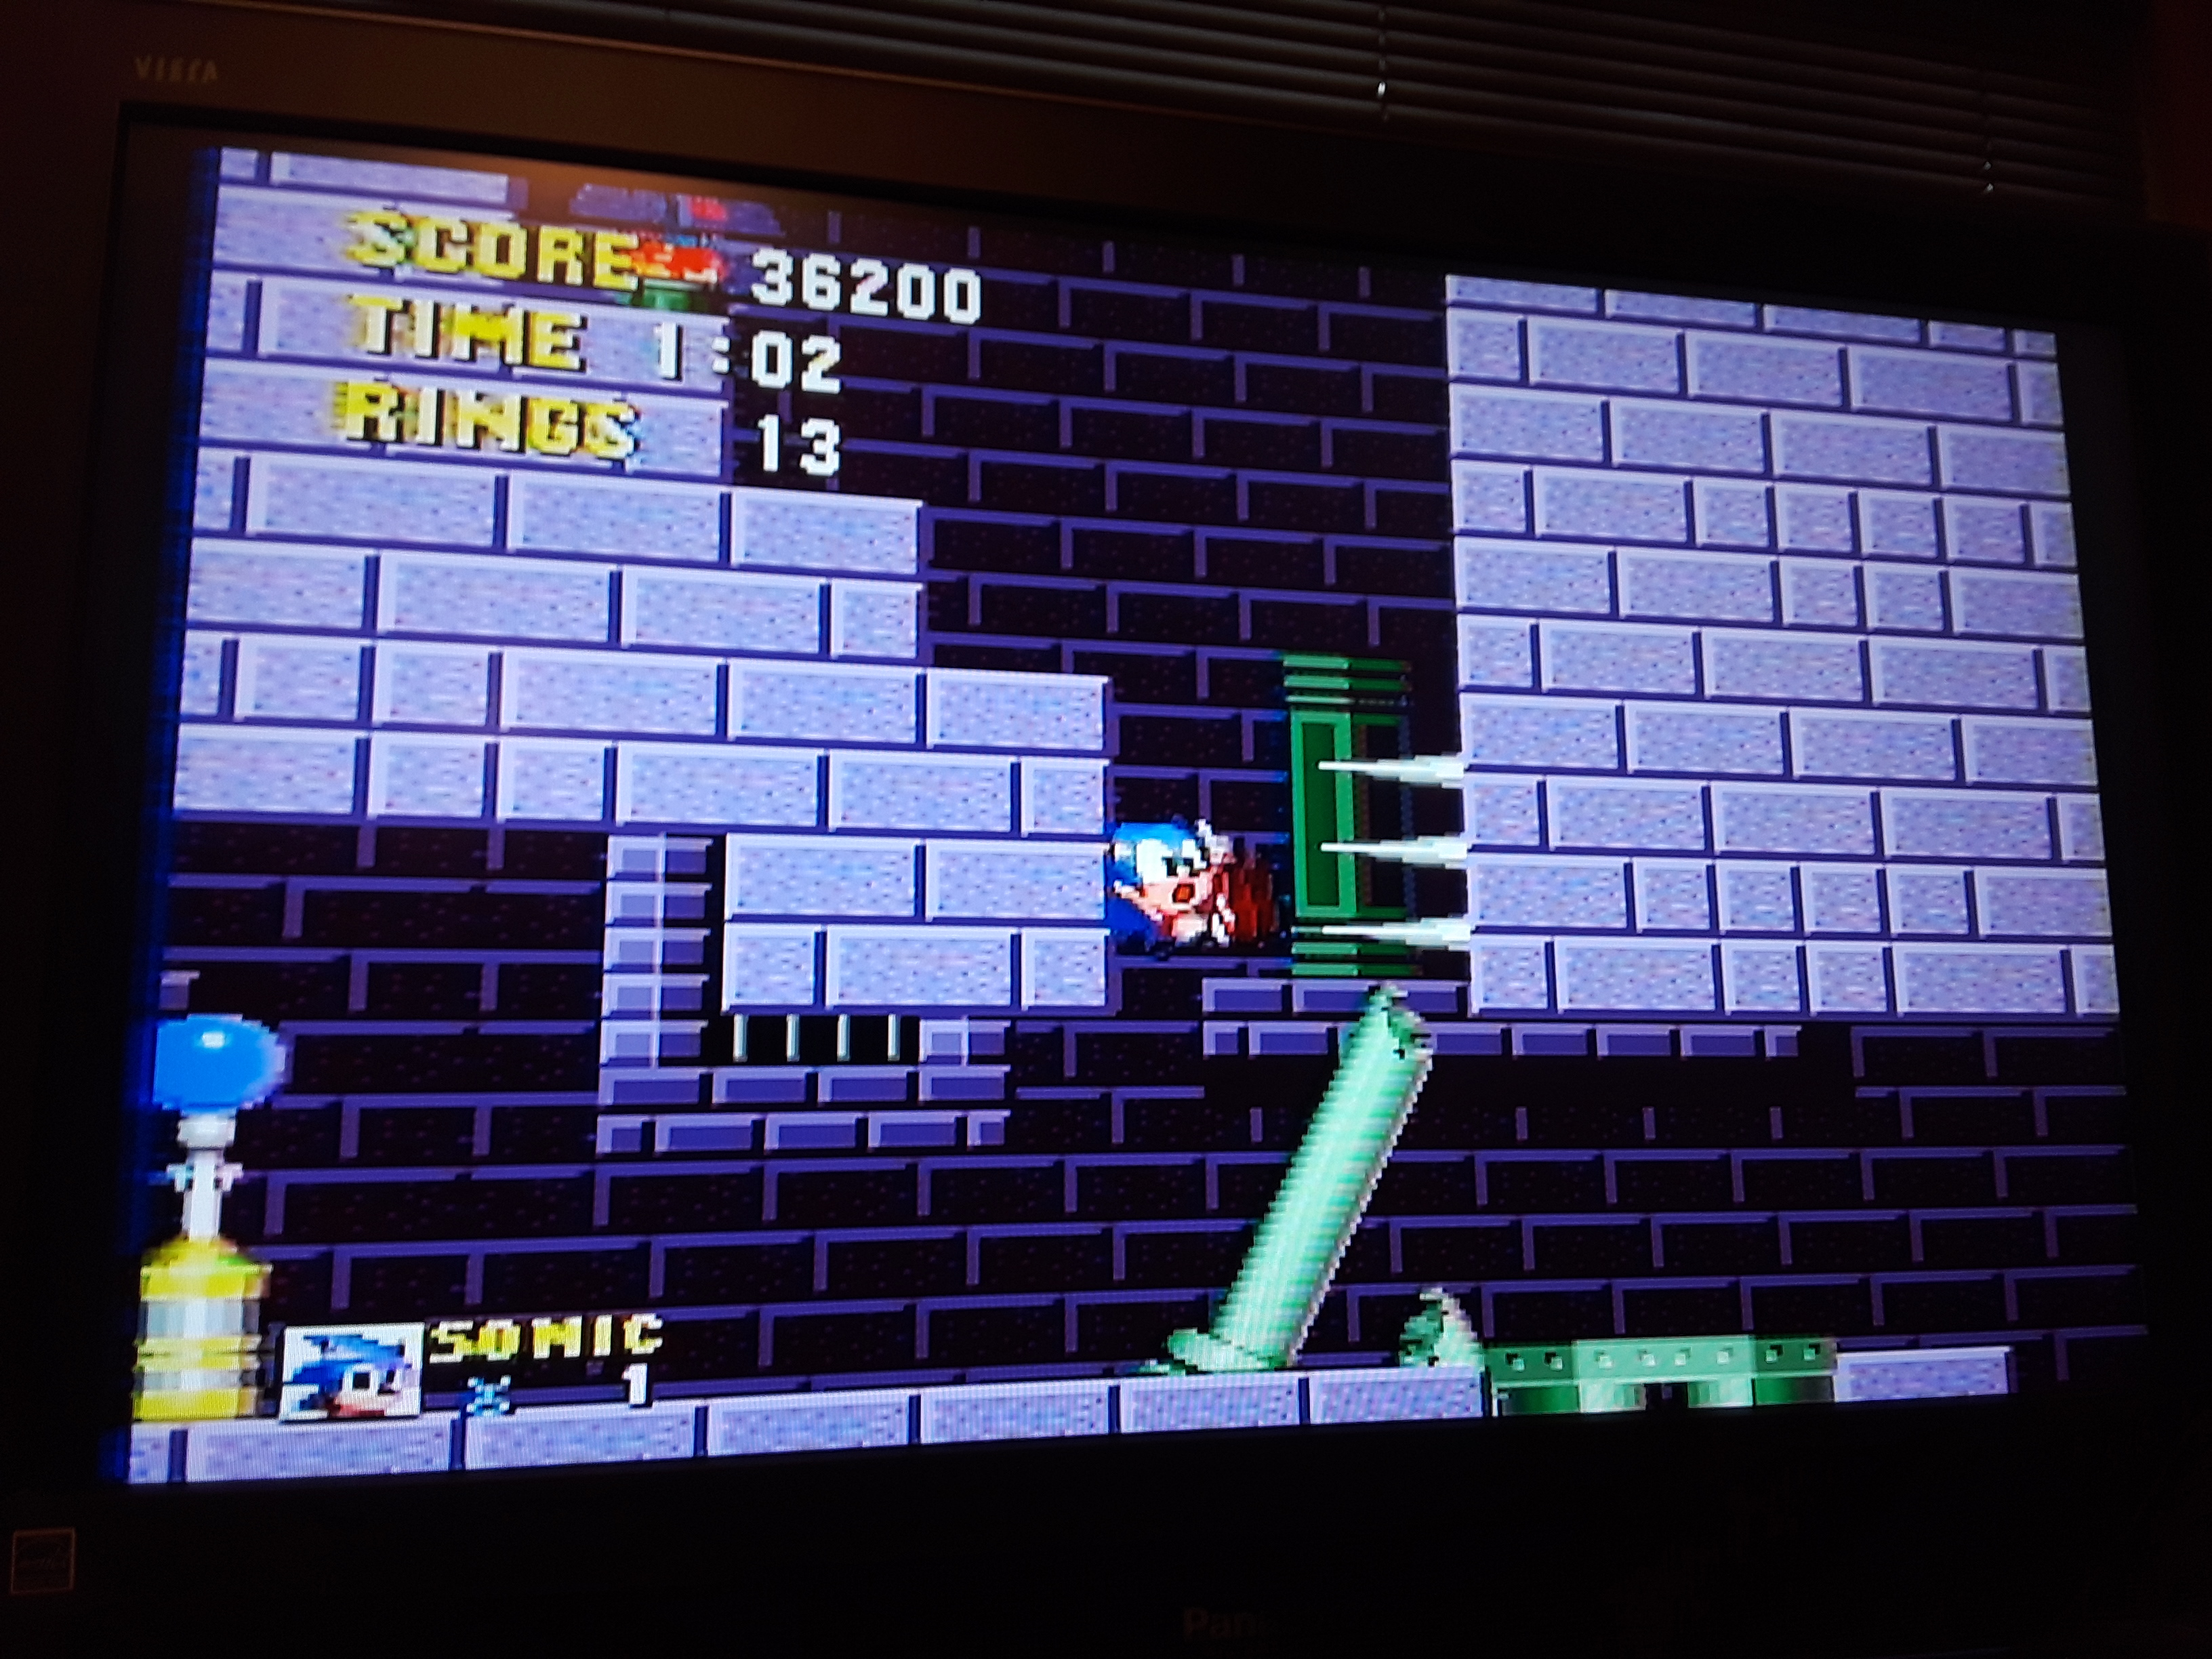 Sonic the Hedgehog 36,200 points